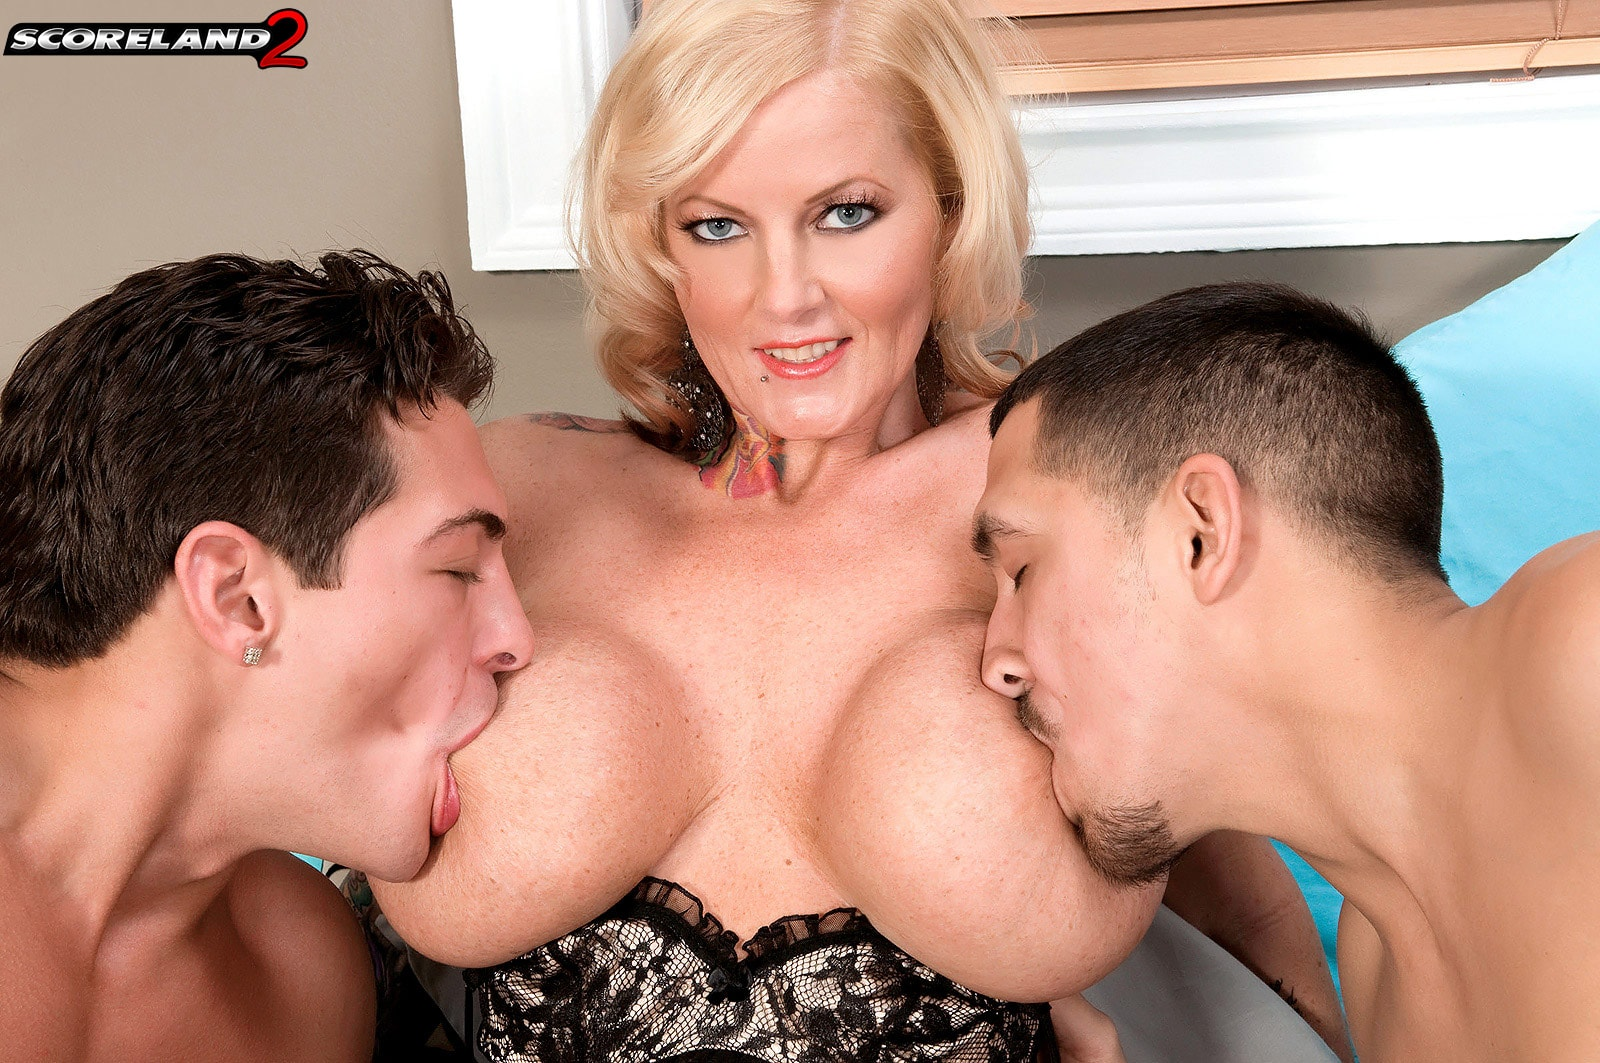 Score 'Too Much Woman For Just One Man' starring Sabrina Linn (Photo 7)